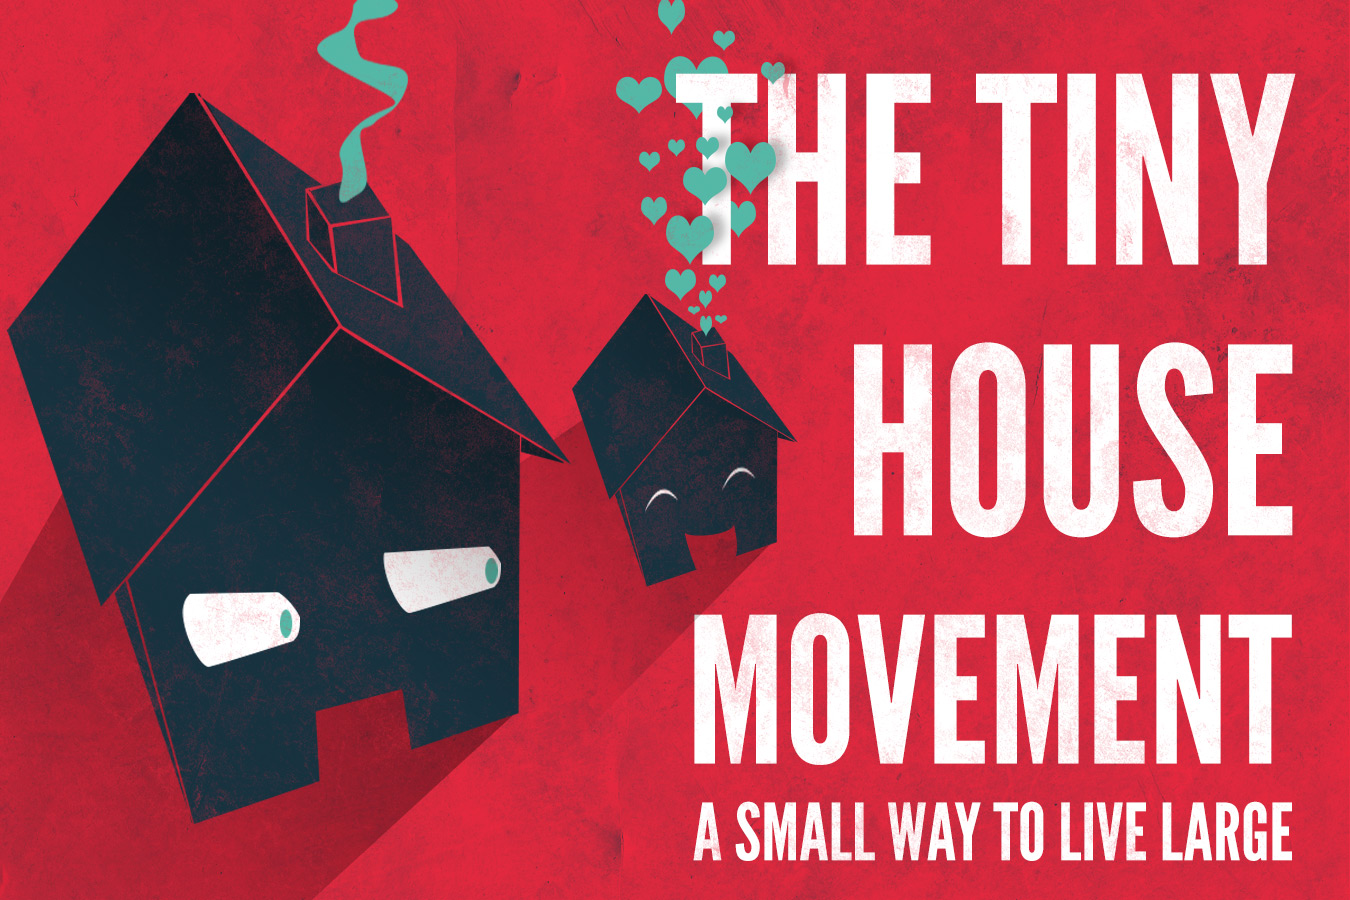 The Tiny House Movement: A Small Way to Live Large